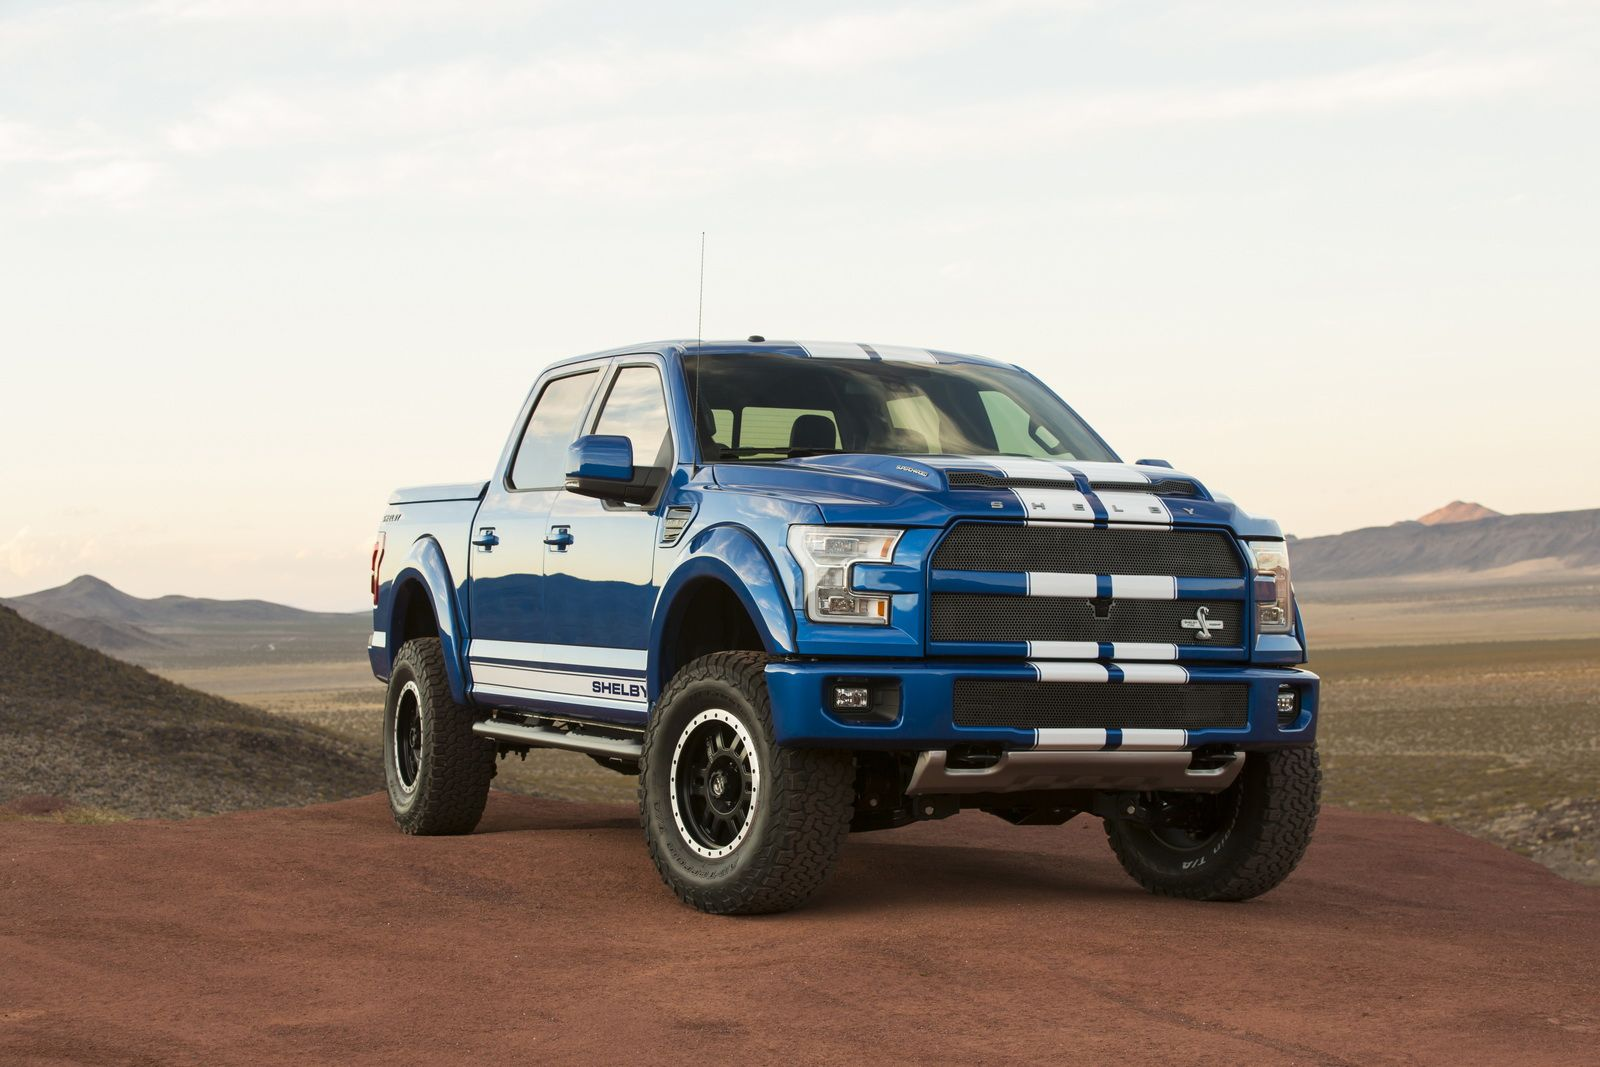 Looking For A 750hp Truck In The Uk Buy A Shelby F 150 Super Snake Carscoops Shelby Truck Ford Lightning Shelby